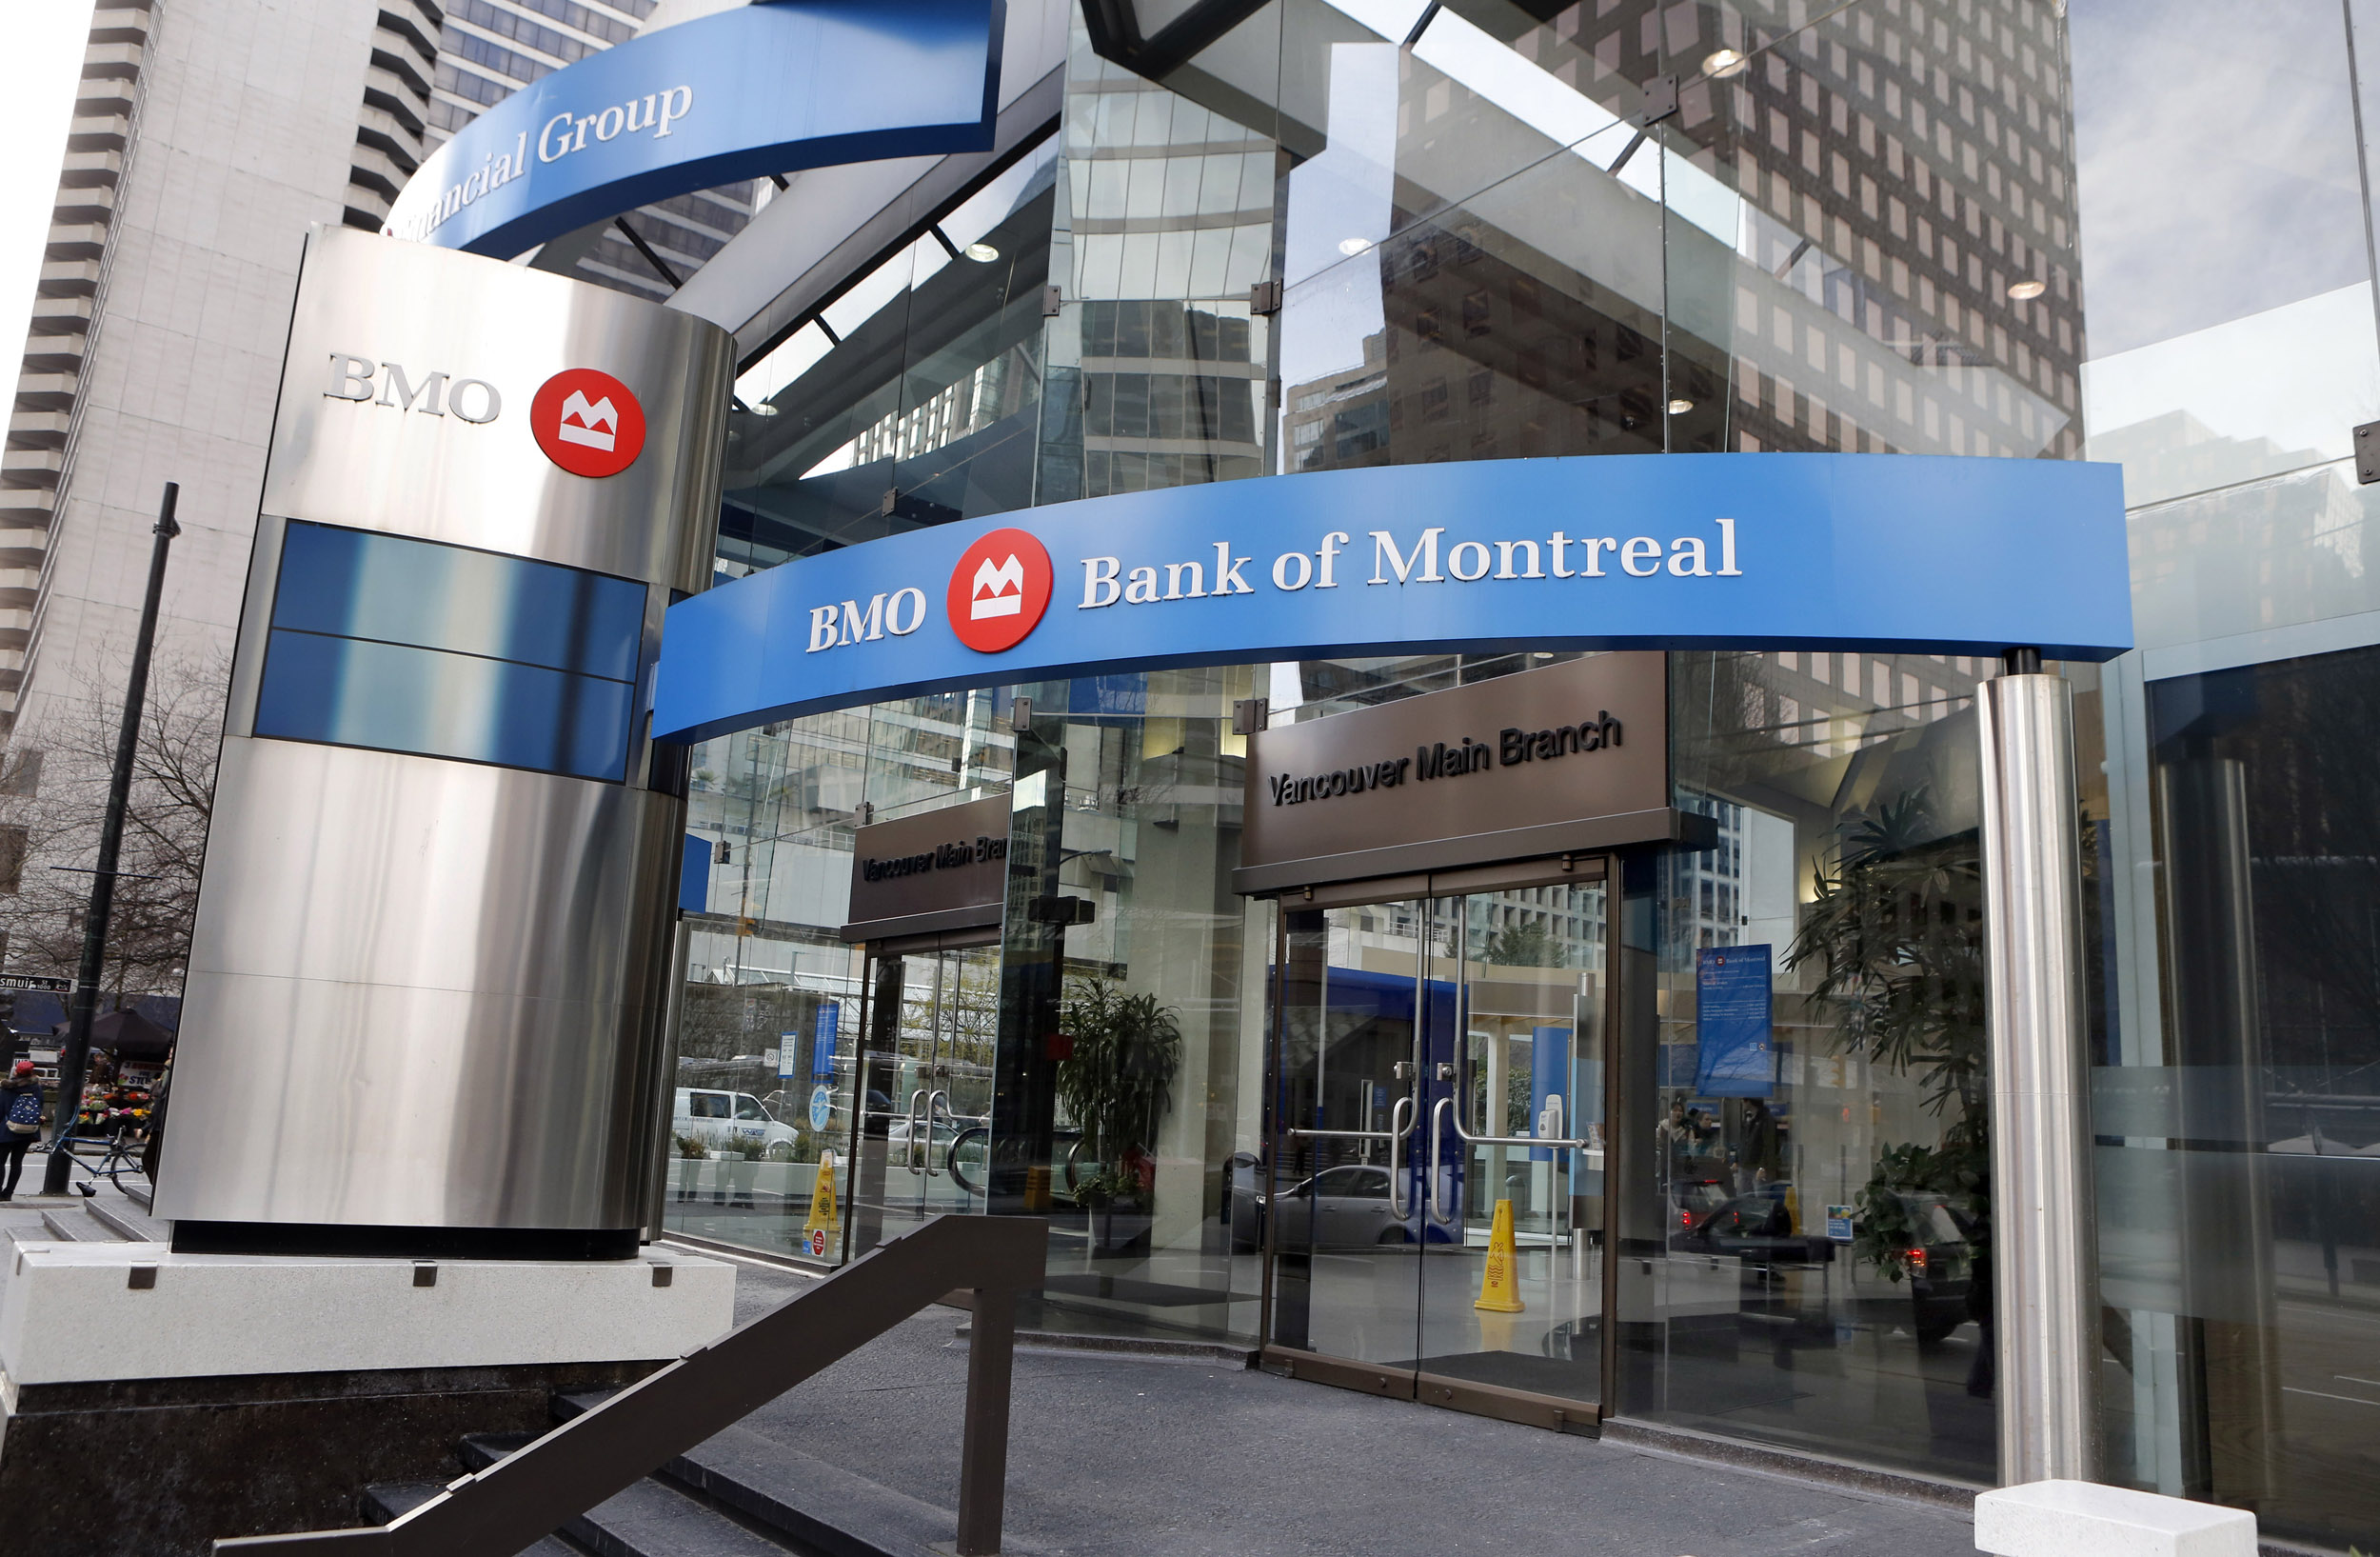 Canada, British Columbia, Vancouver, BMO, Bank of Montreal, logo